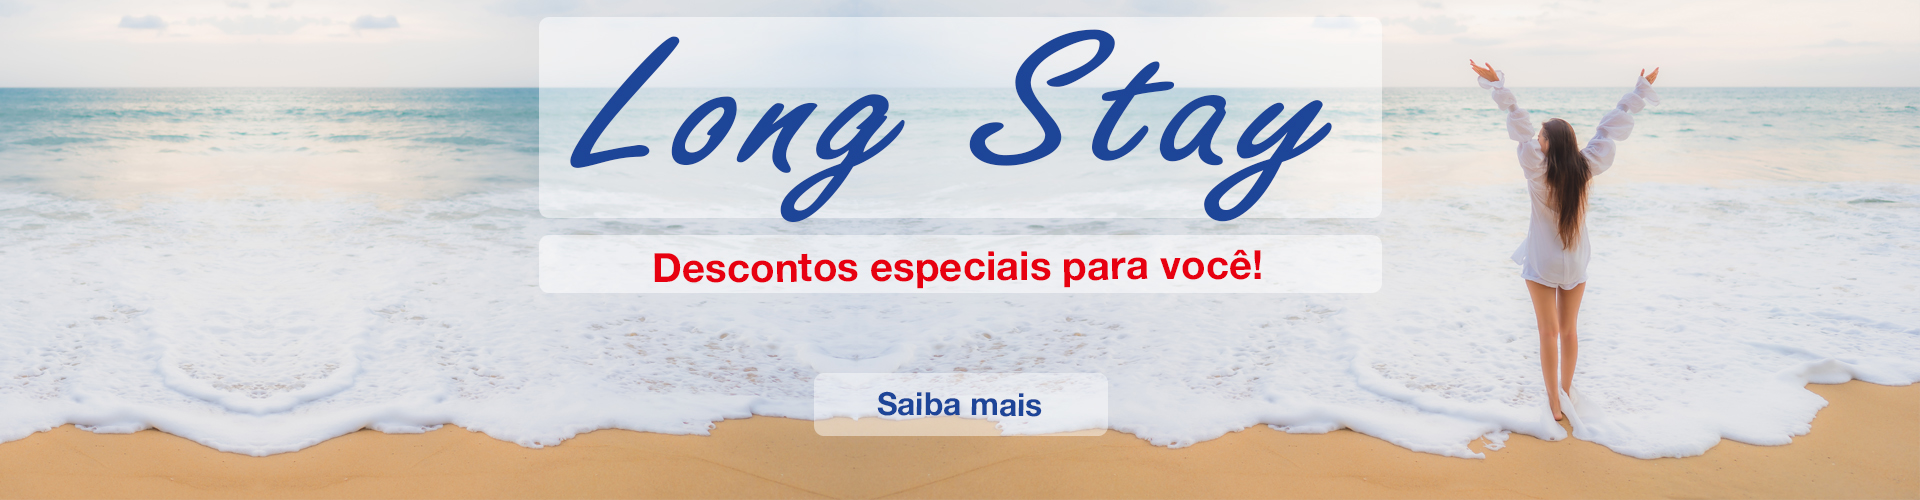 banner long stay